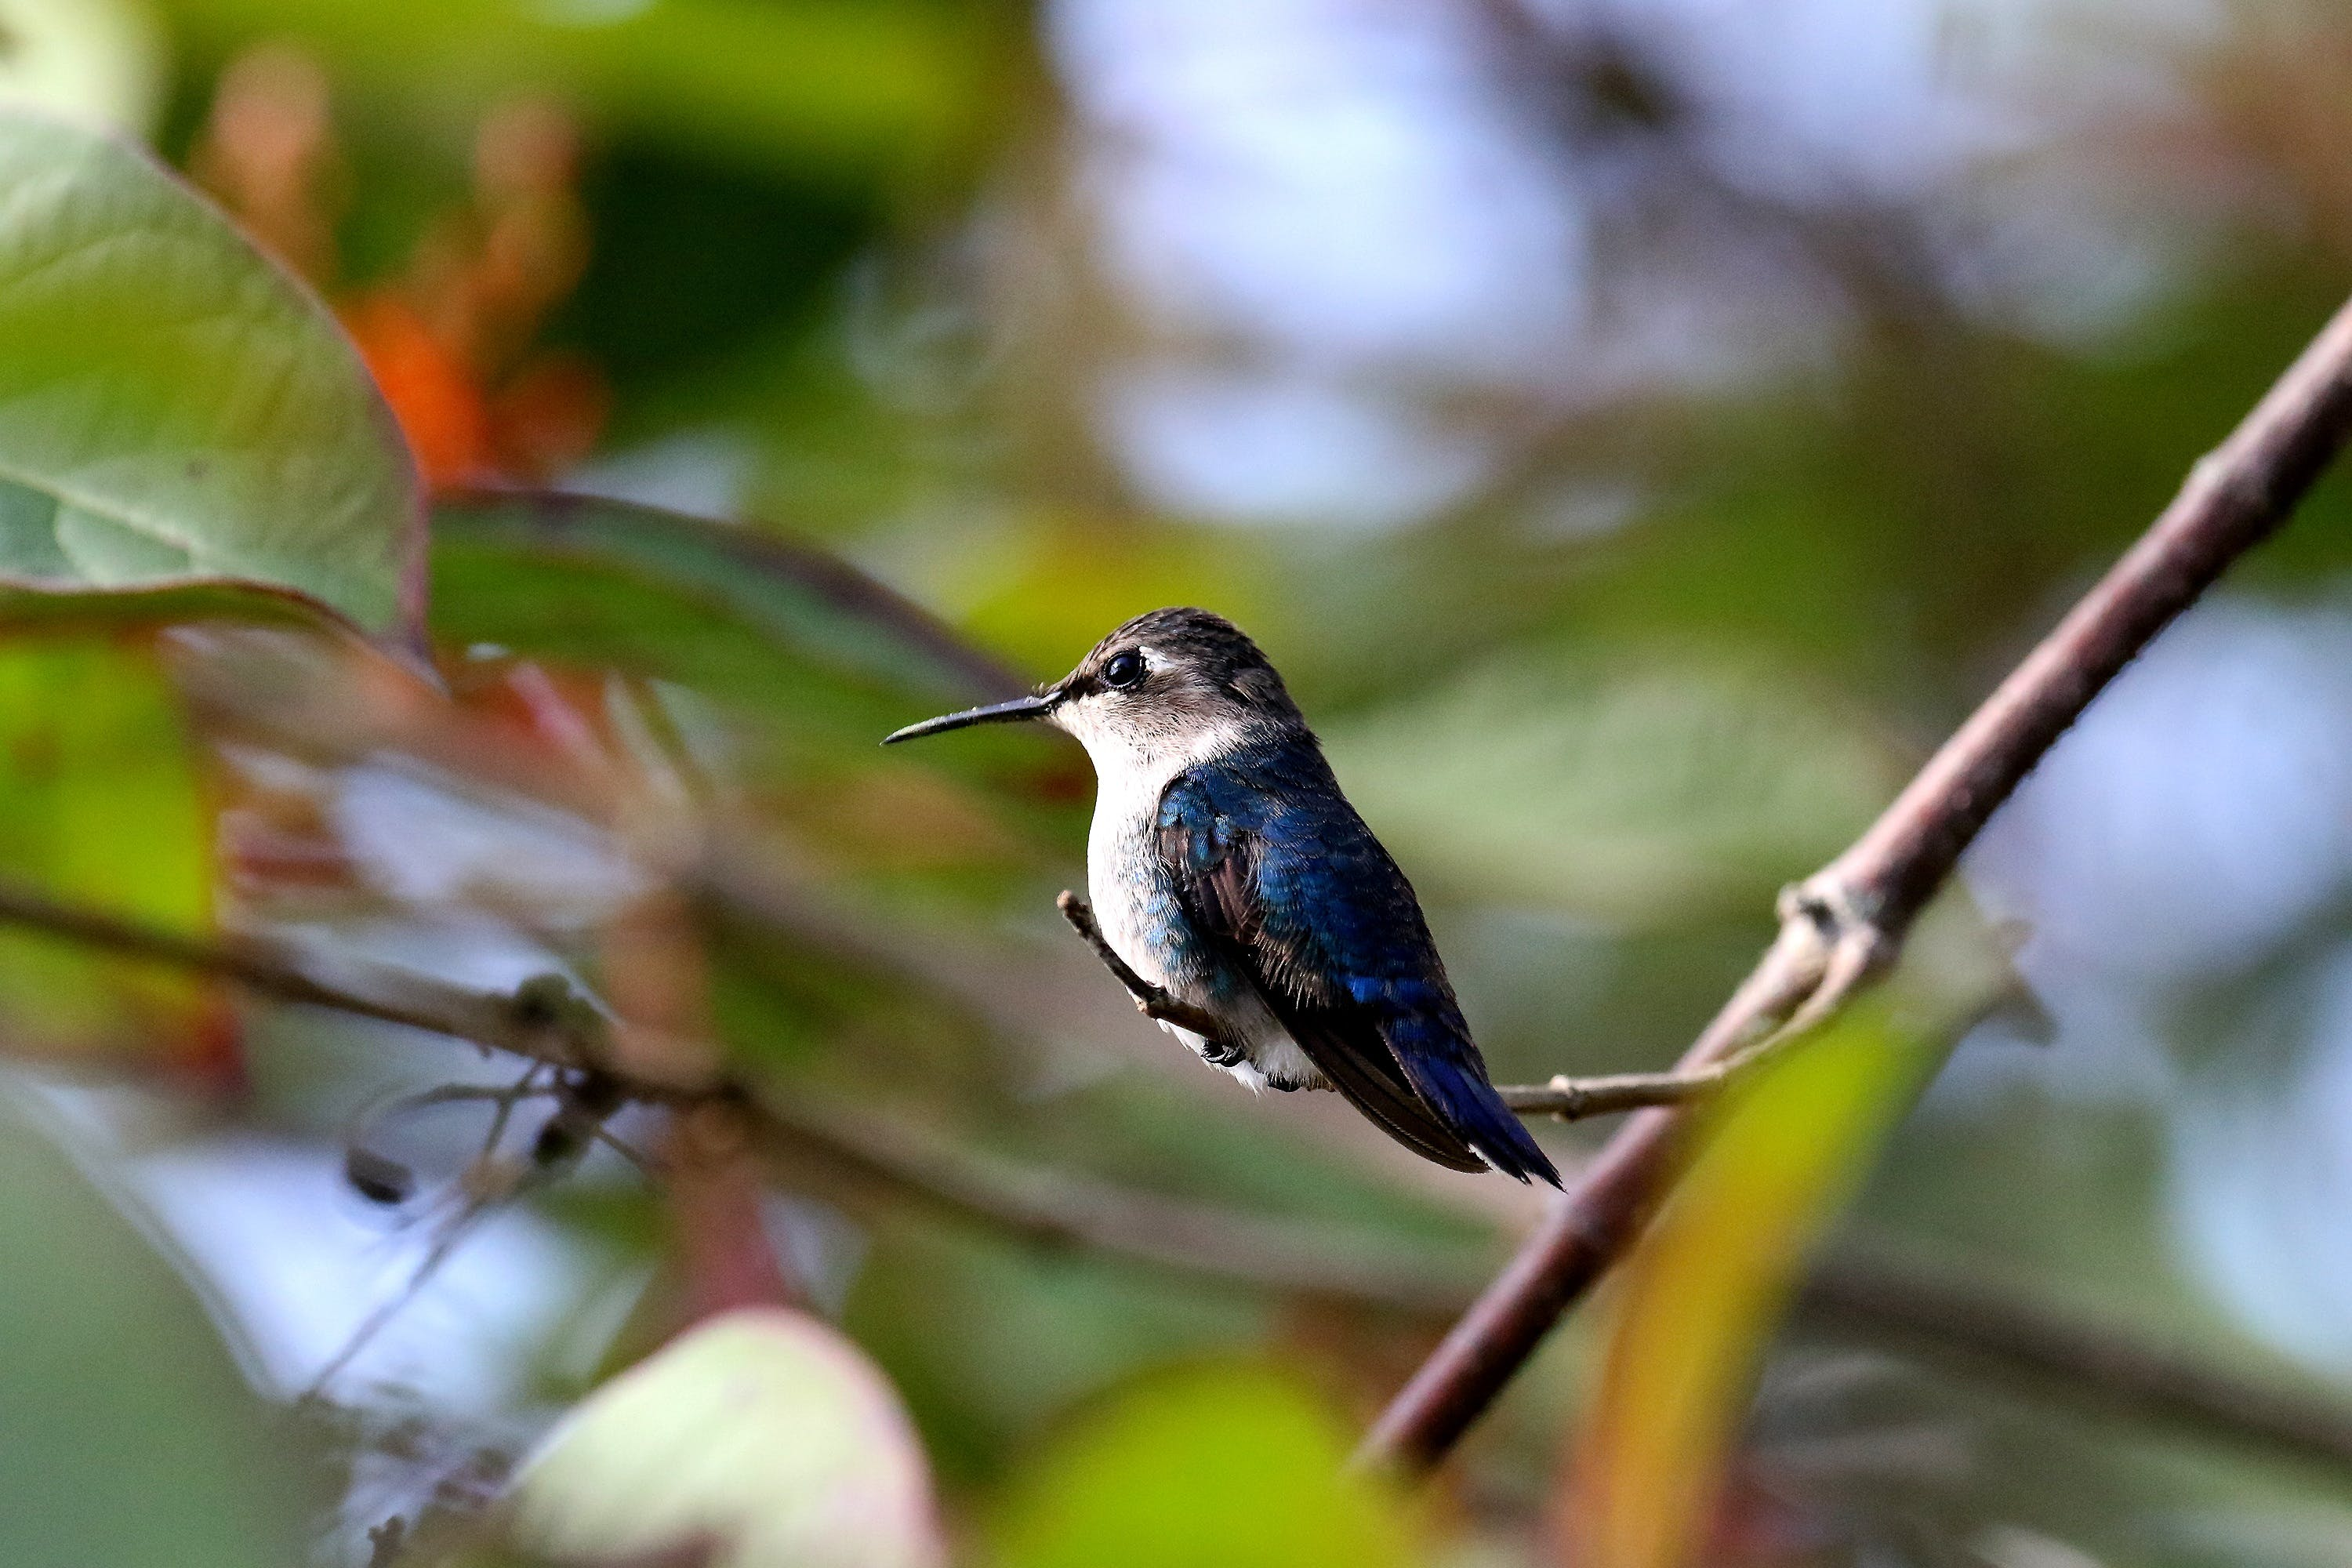 Blue and Black Bird Perched on Tree Branch